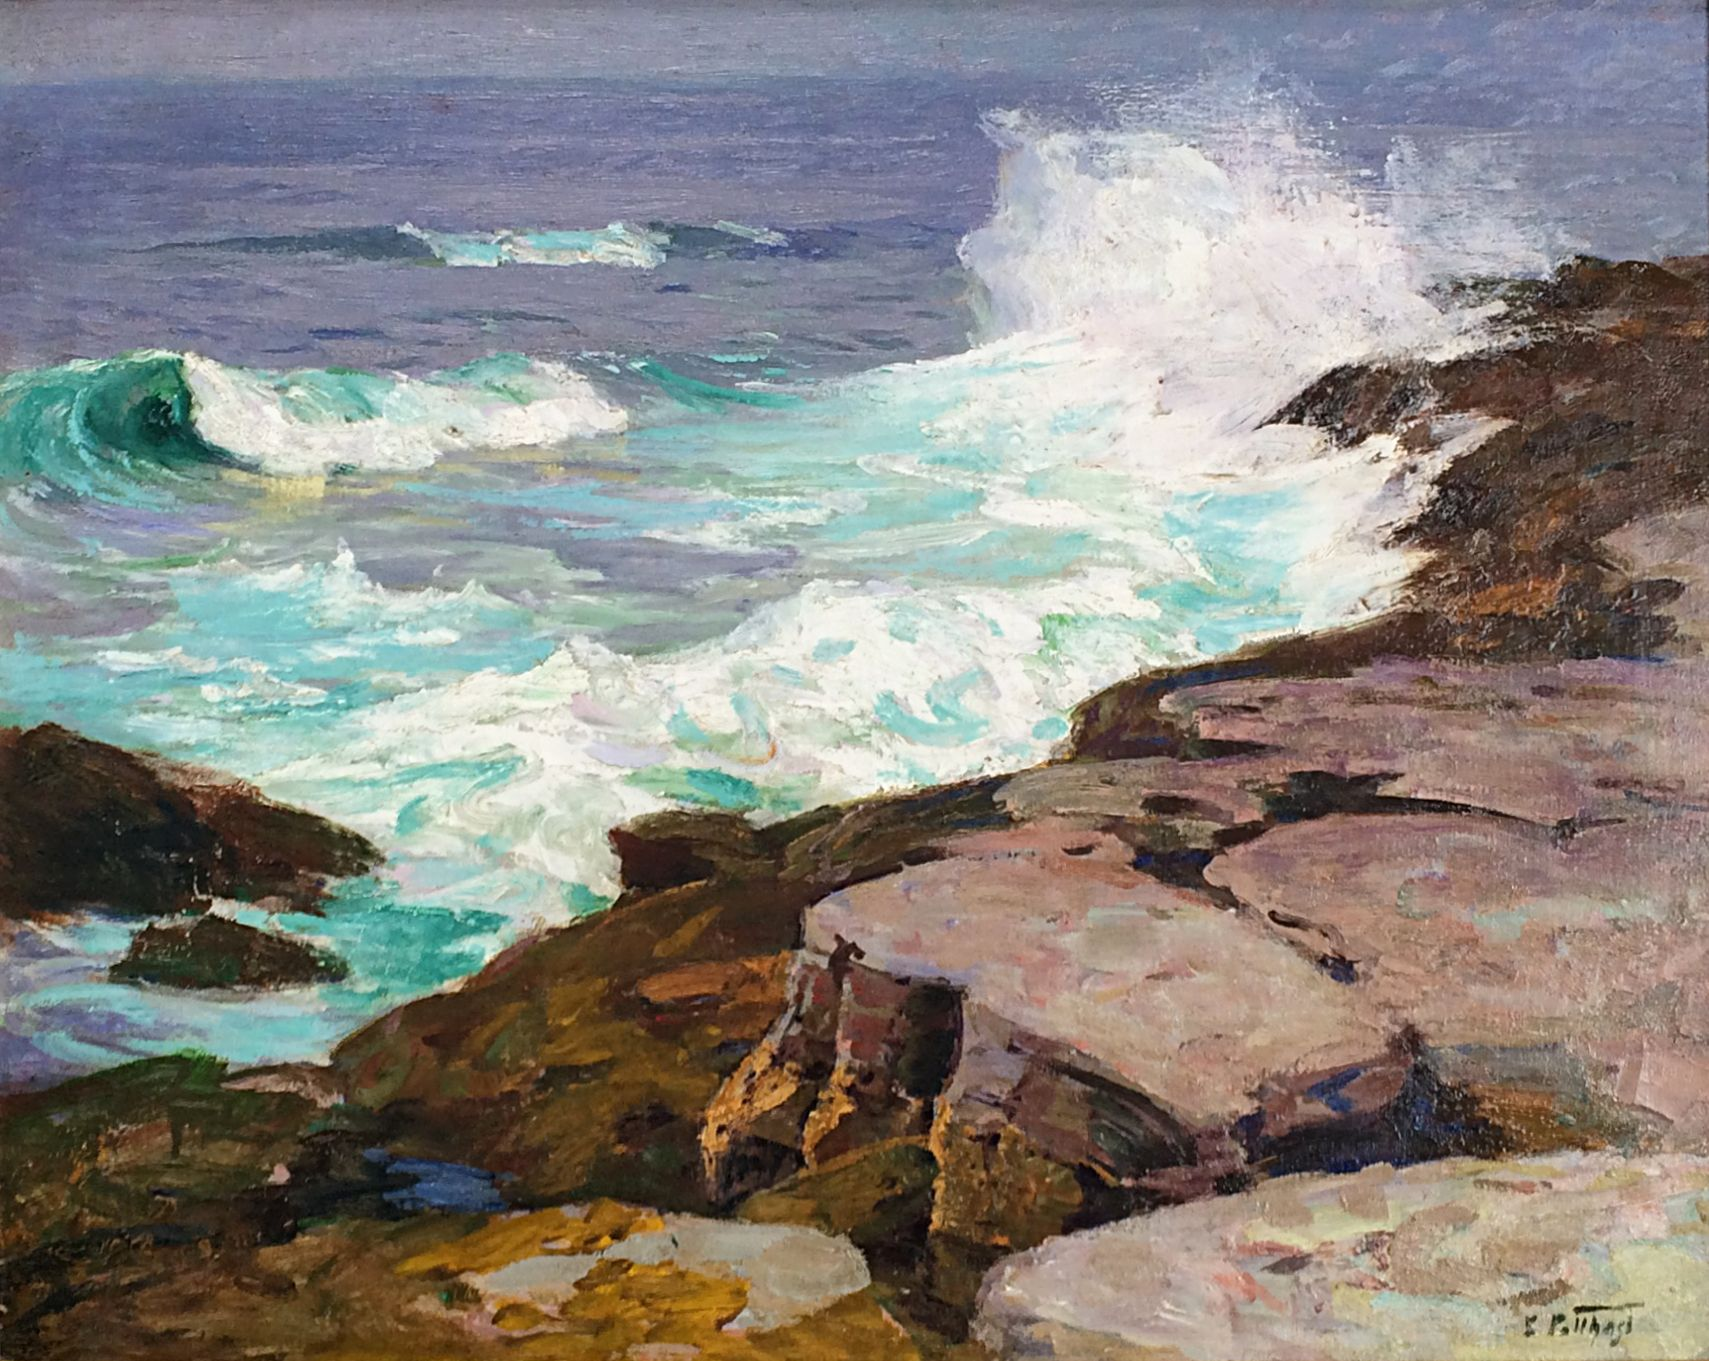 Edward Potthast, Surf at Low Tide